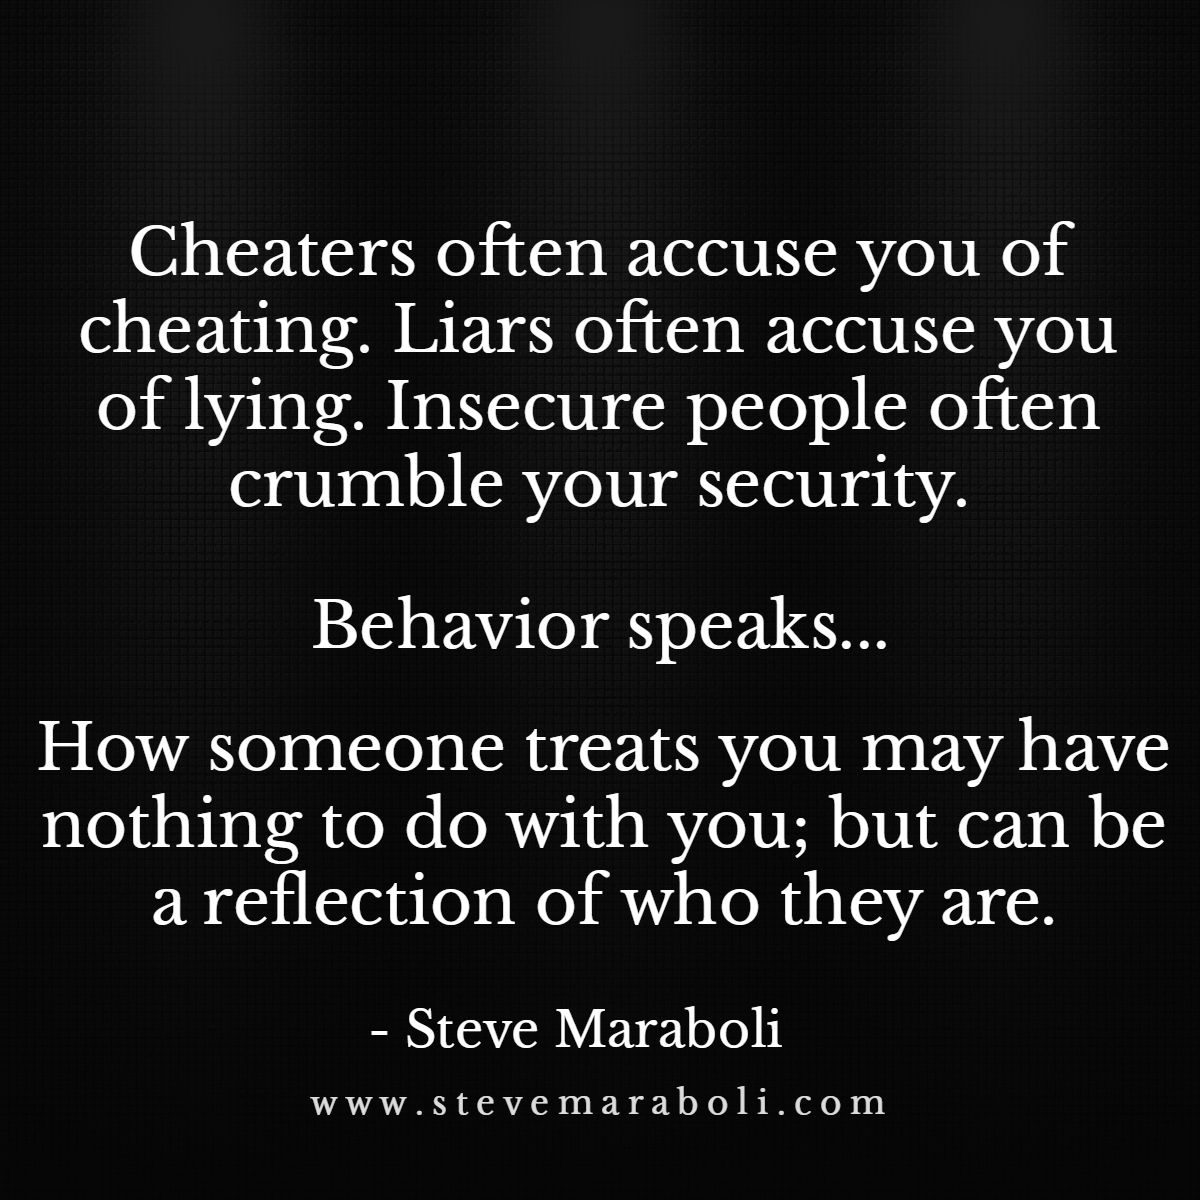 Quotes About People Who Lie: Cheaters Often Accuse You Of Cheating. Liars Often Accuse